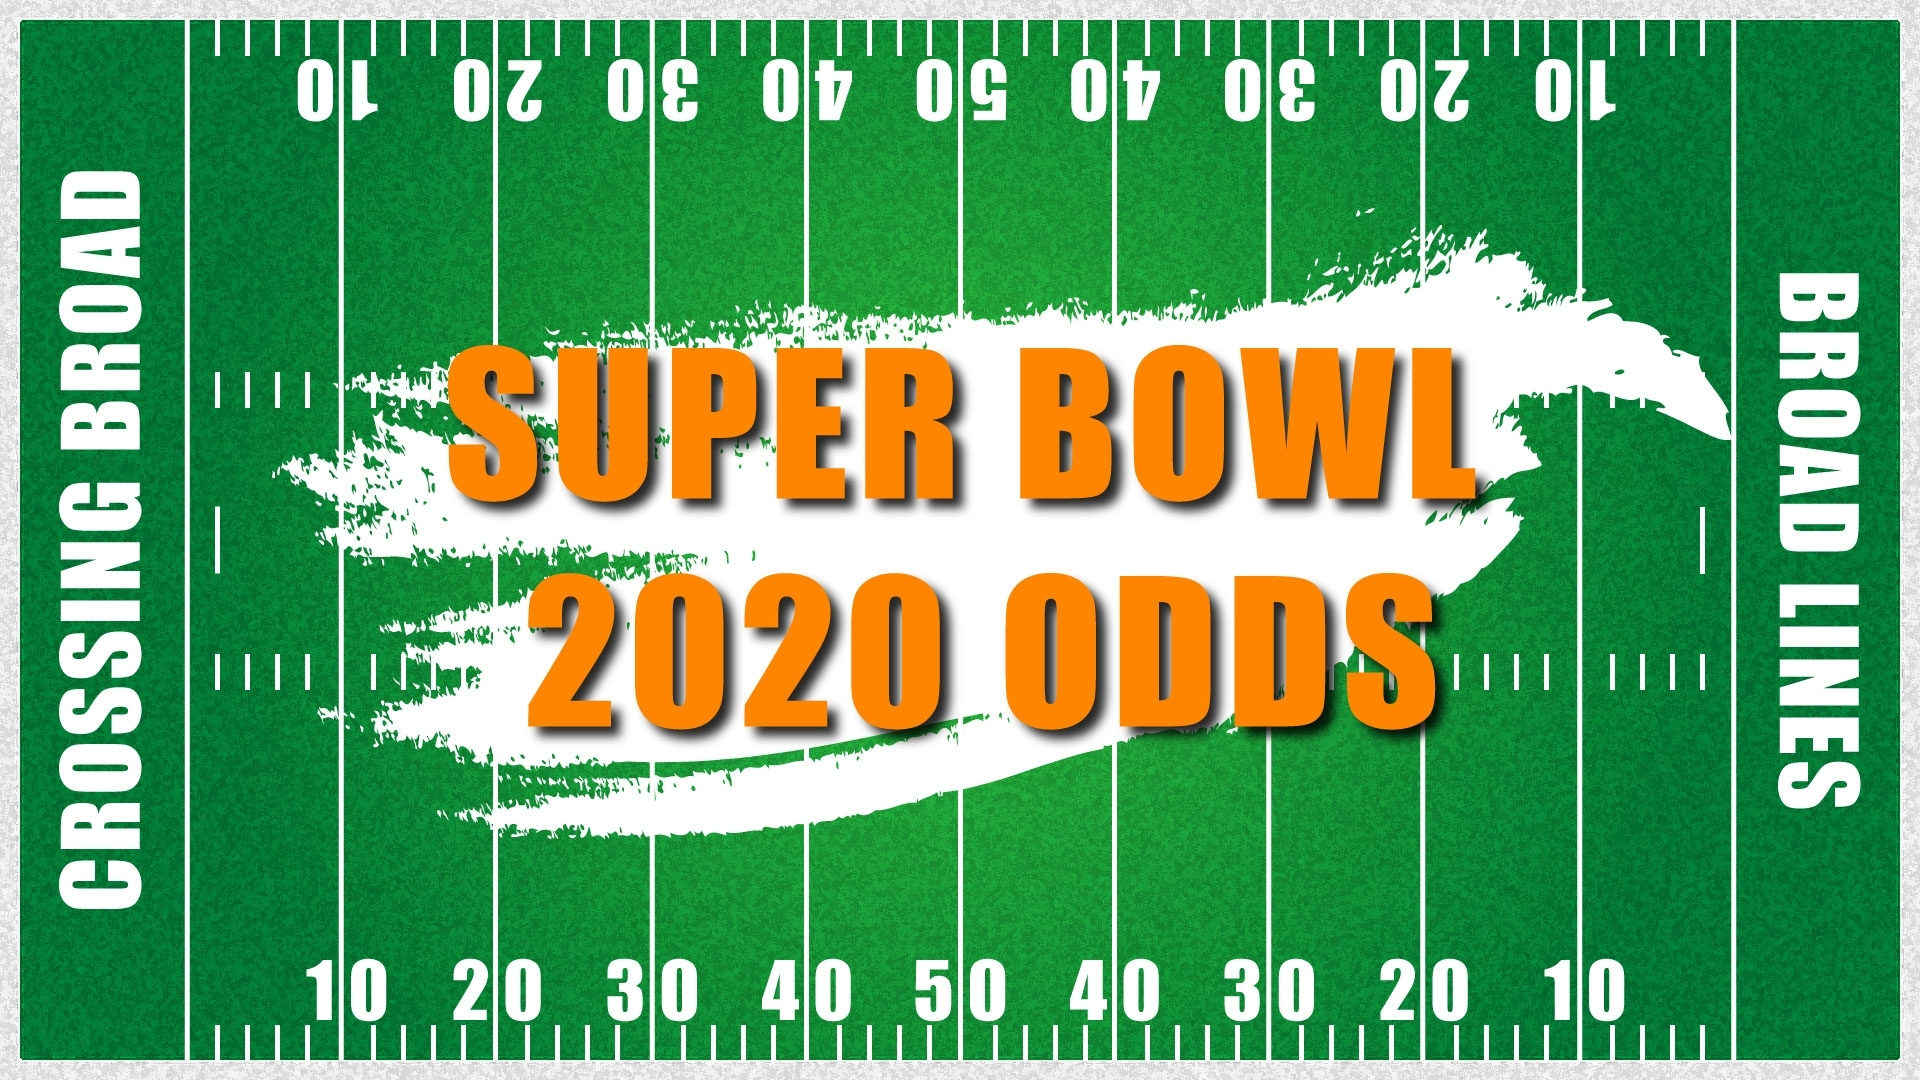 2020 Super Bowl Odds | Odds To Win Super Bowl 54 | Crossing with Odds Miami Dolphins Win Super Bowl